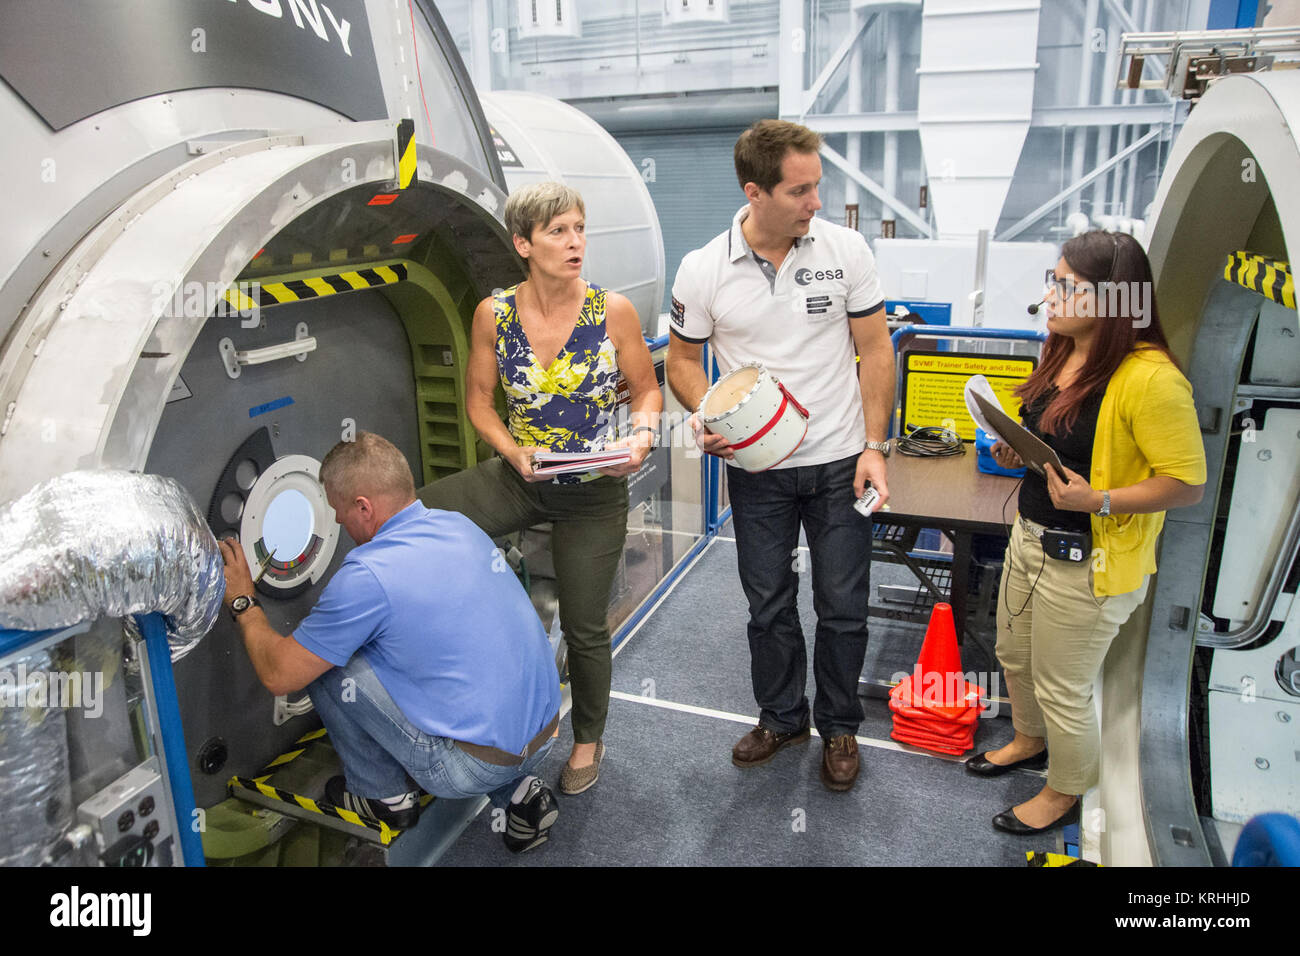 Date: 09-17-15 Location: Bldg 9NW, ISS Mockups Subject: Expedition 50/51 crew members Peggy Whitson, Thomas Pesquet, - Stock Image